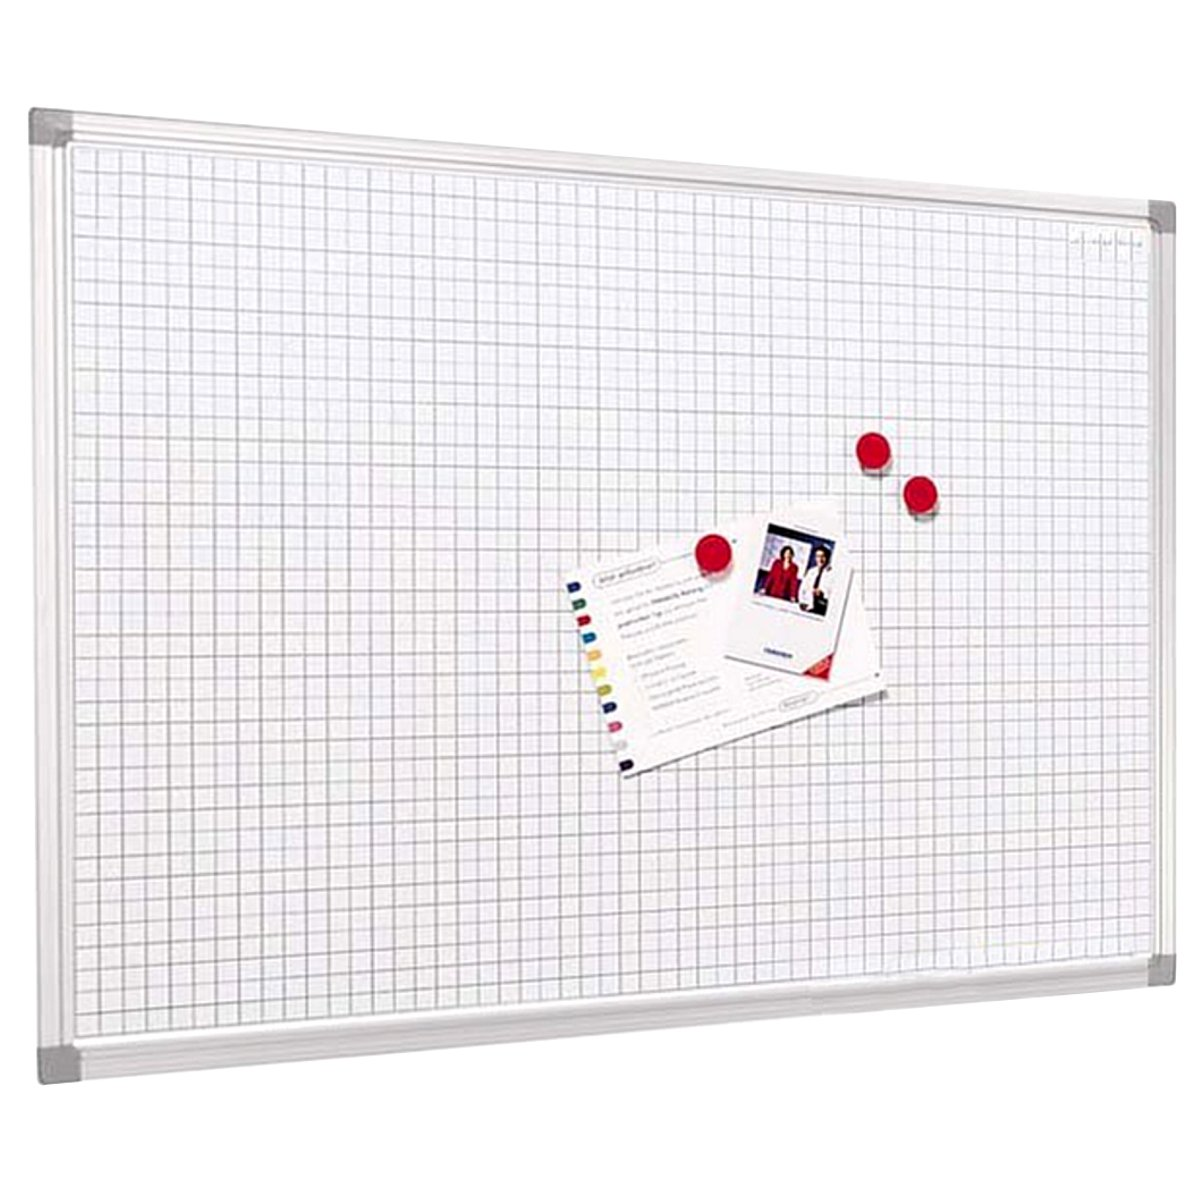 Master of Boards Grid Design Magnetic Whiteboard - 45x60cm (1'6' x2') | 2